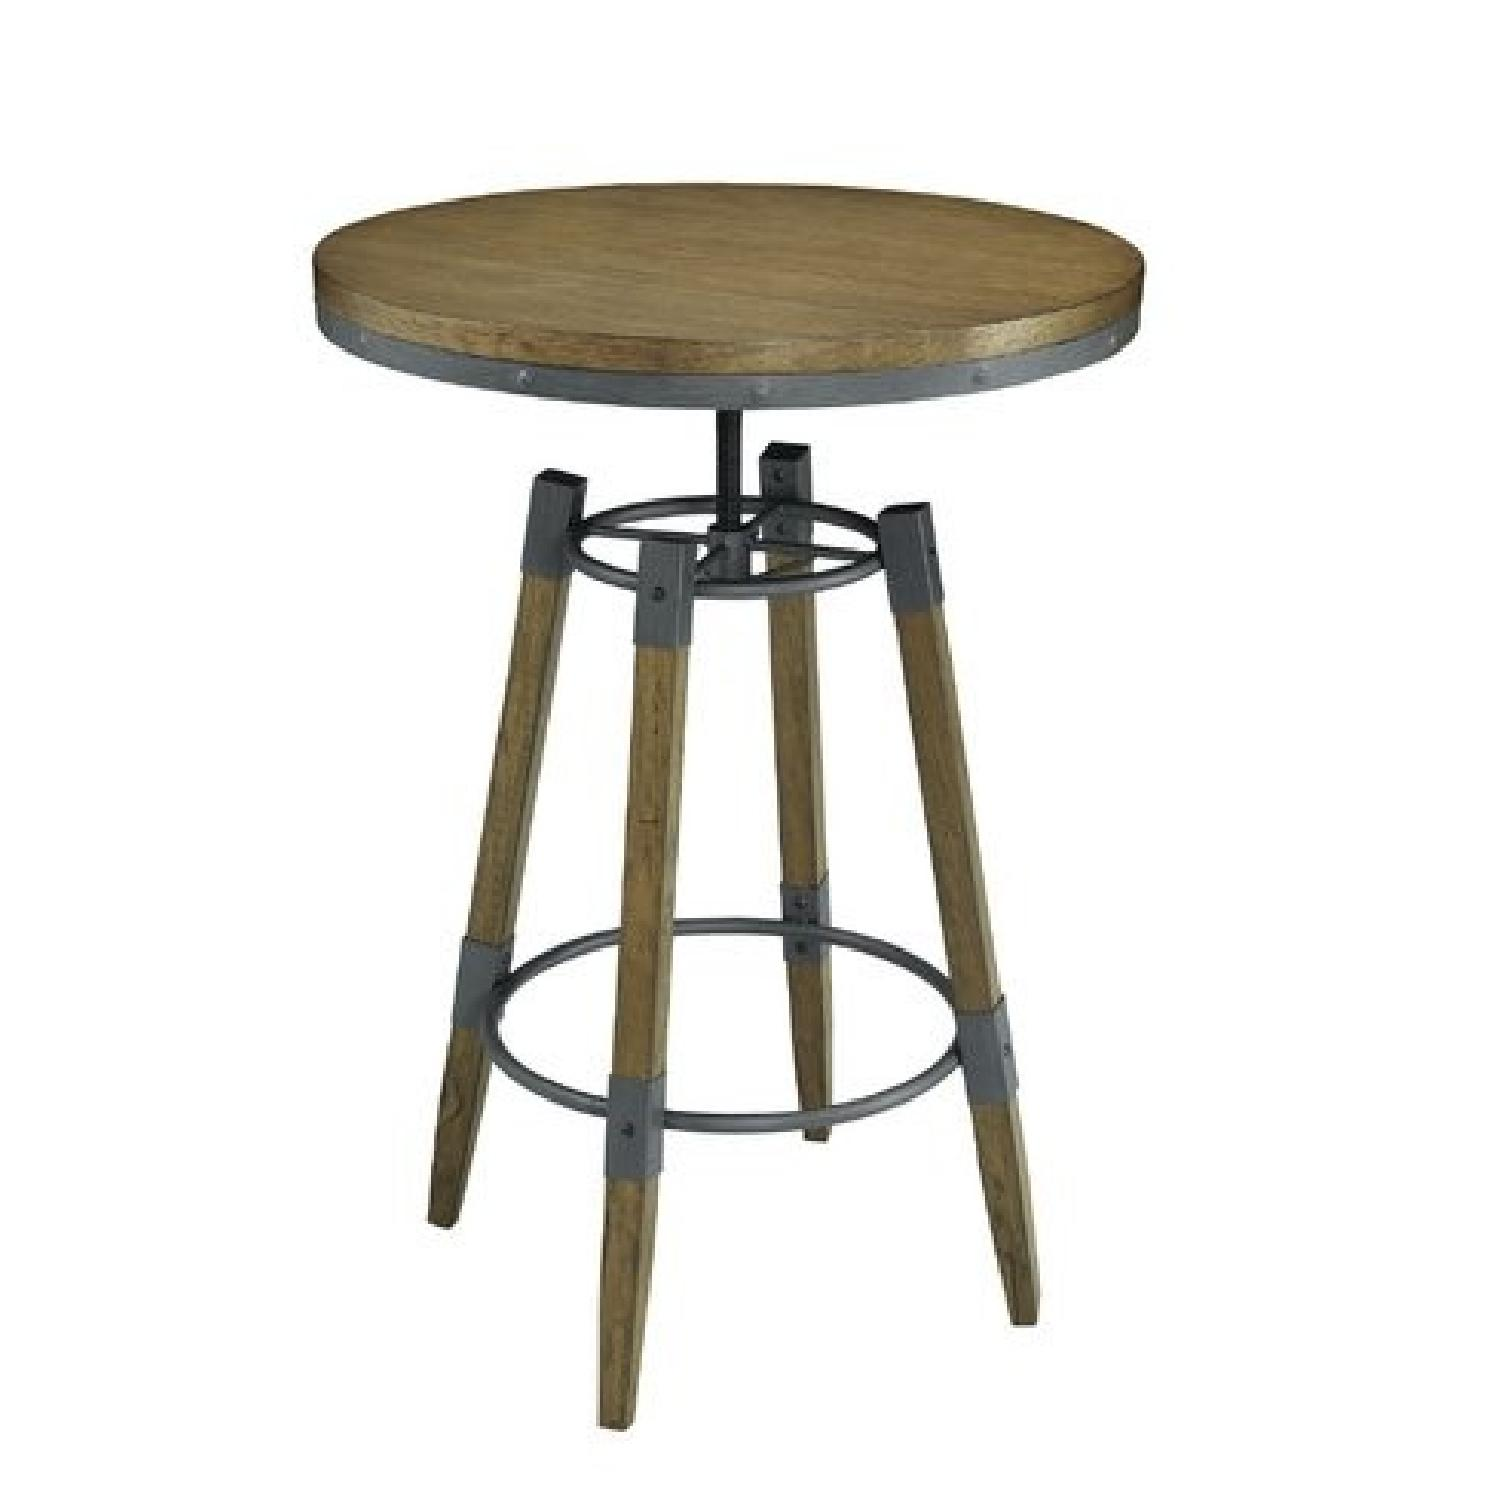 Rustic Height Adjustable Counter/Bar Table w/ Metal Details